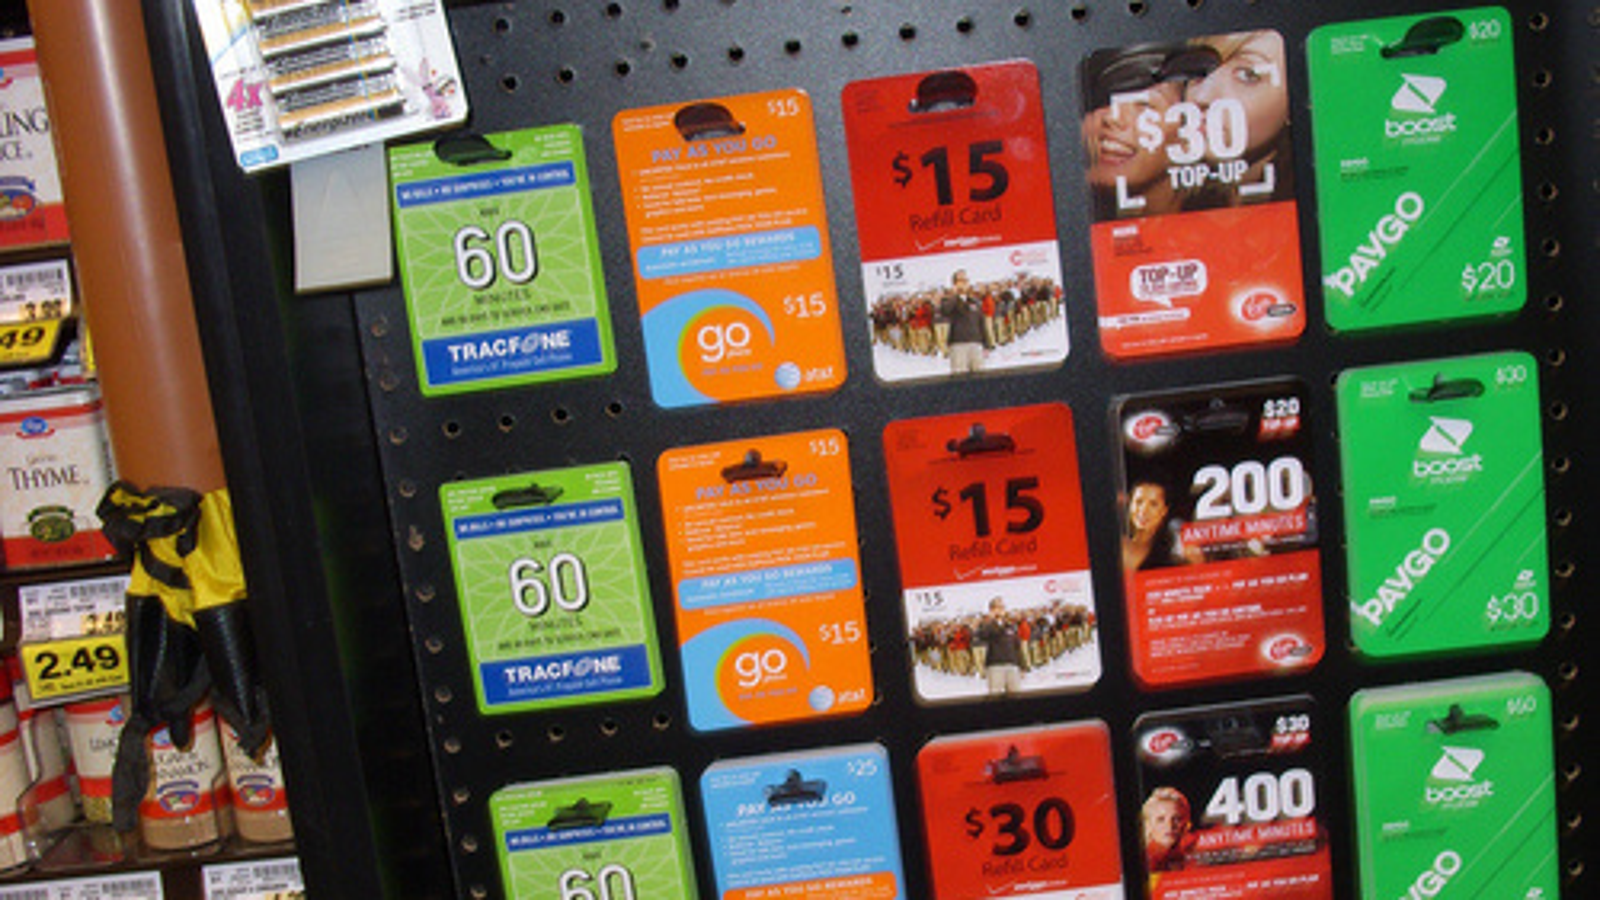 Use Prepaid Gift Cards at Other Stores and Locations